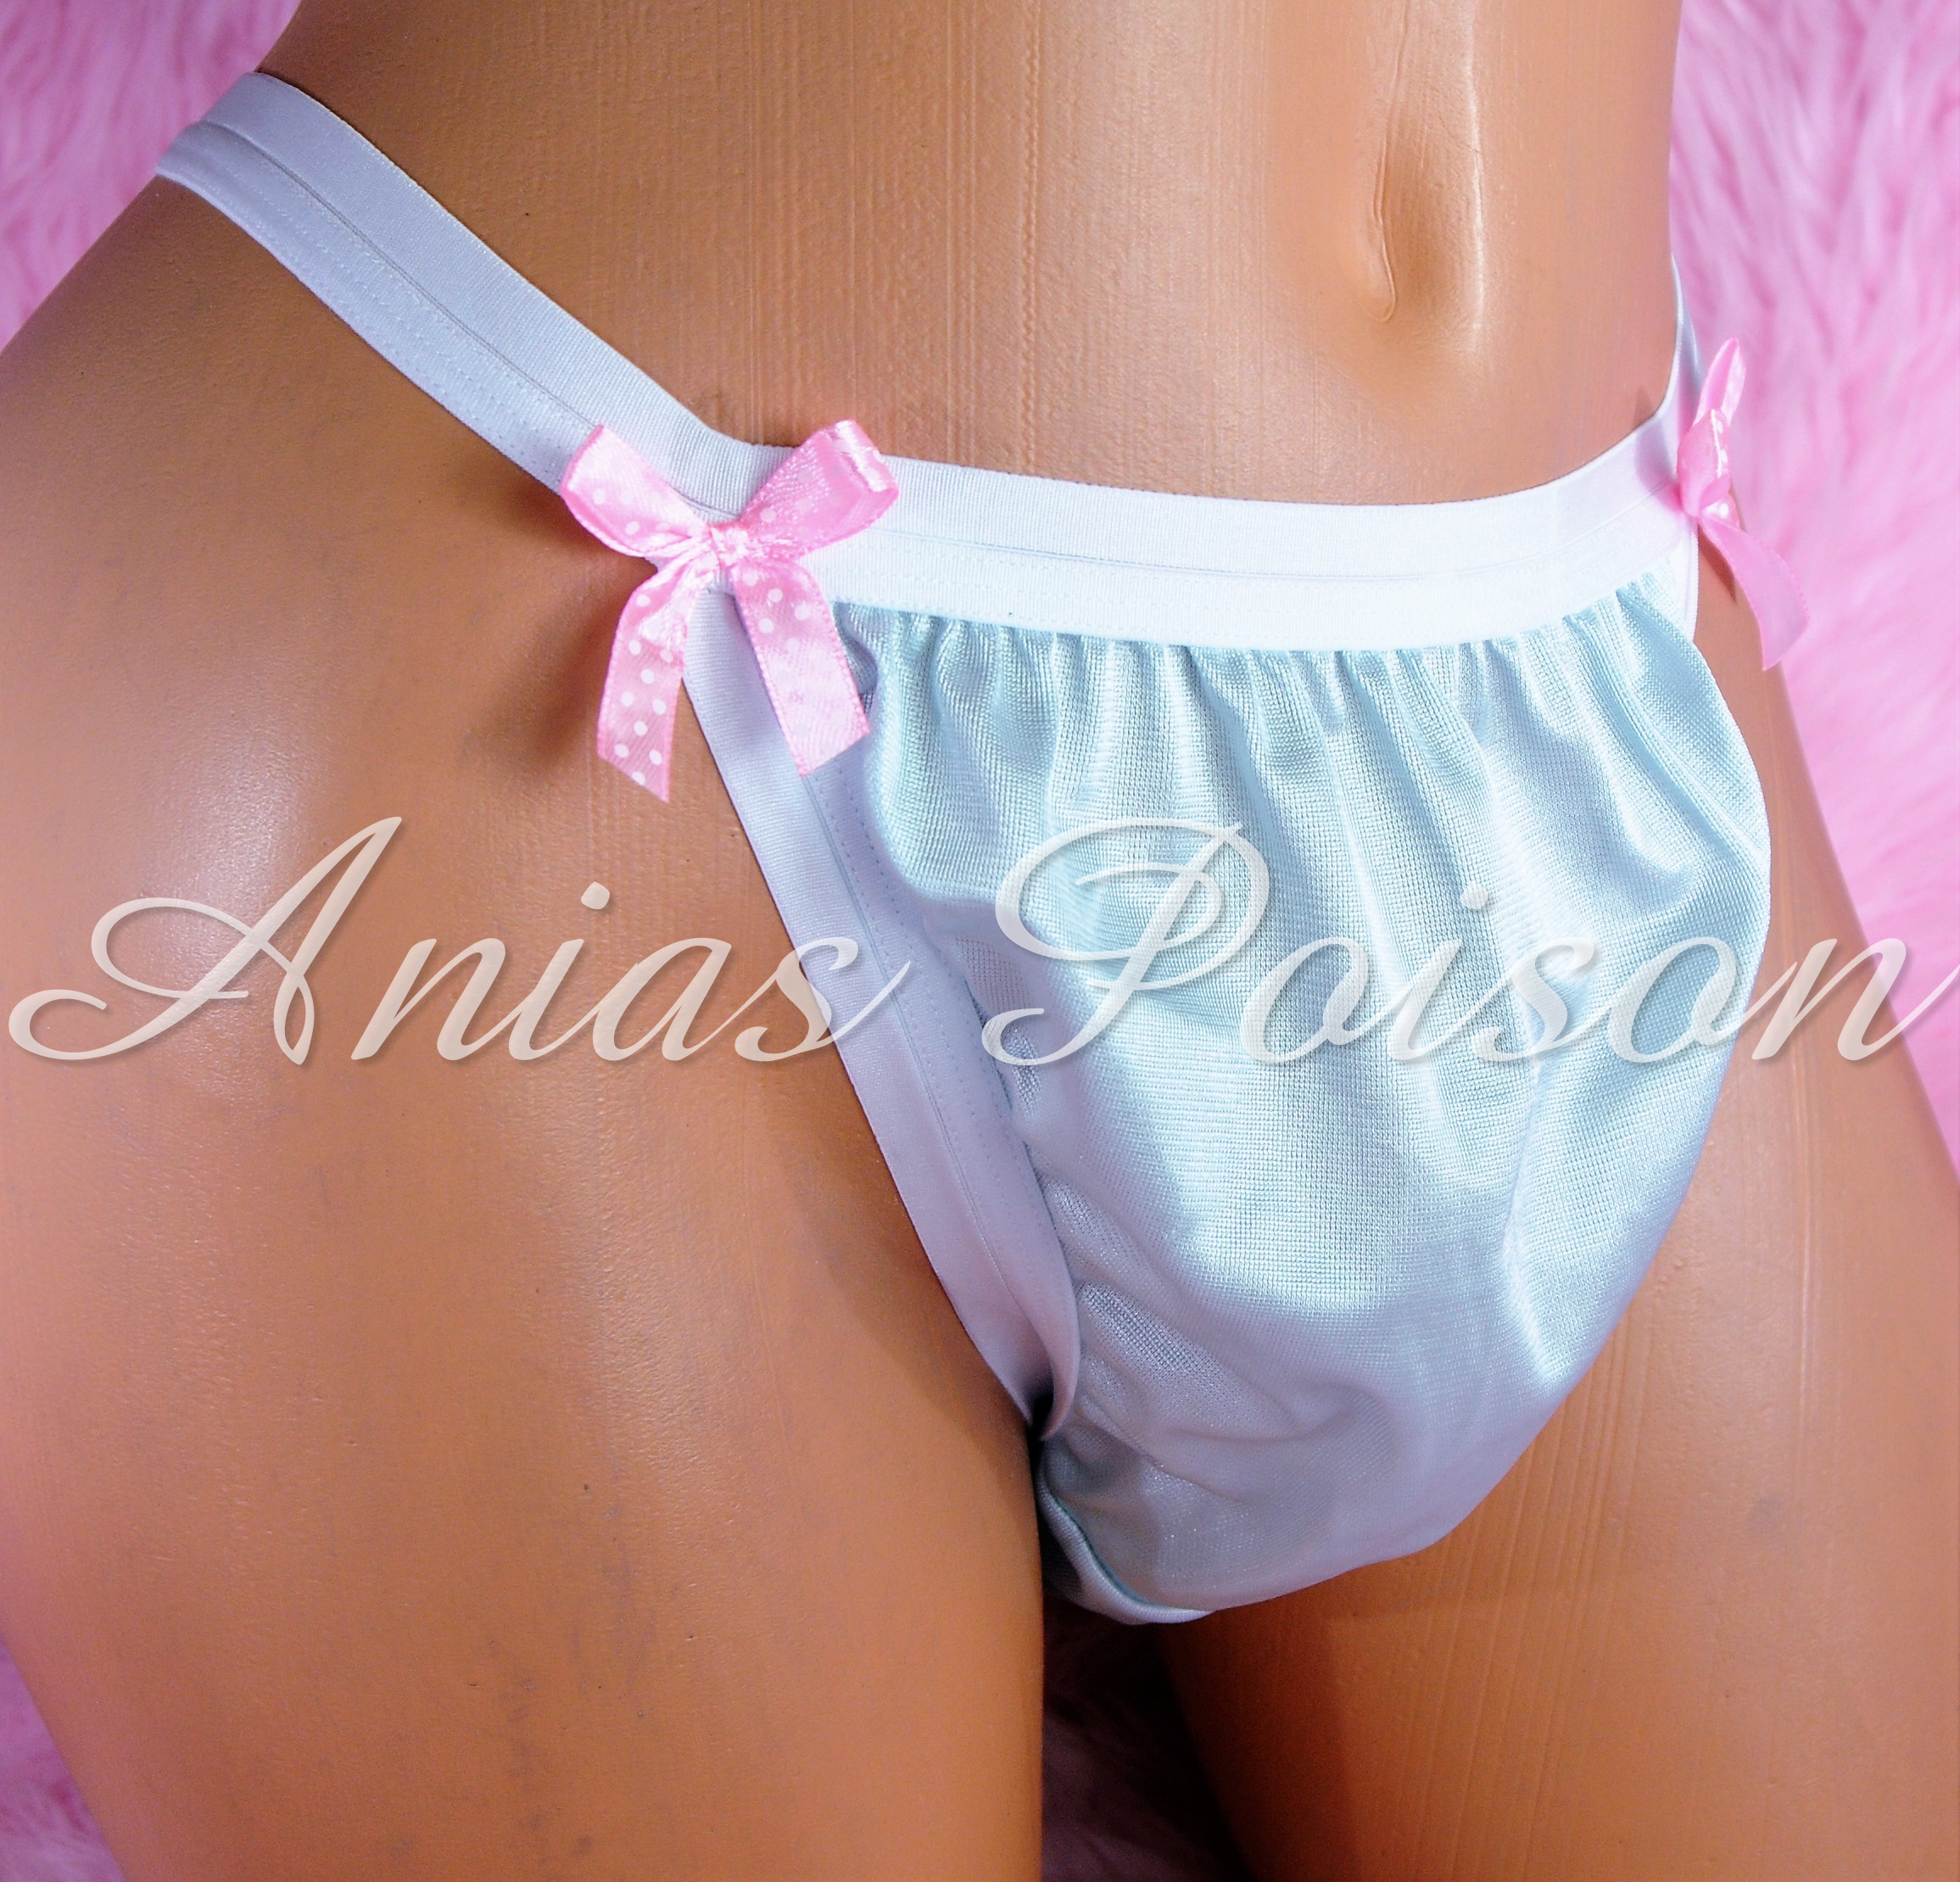 NEW COLORS ADDED!!! Ania's Poison MANties Rare Vintage Style string bikini soft ALL NYLON TRICOT Sissy panties for men S - XXL 00179